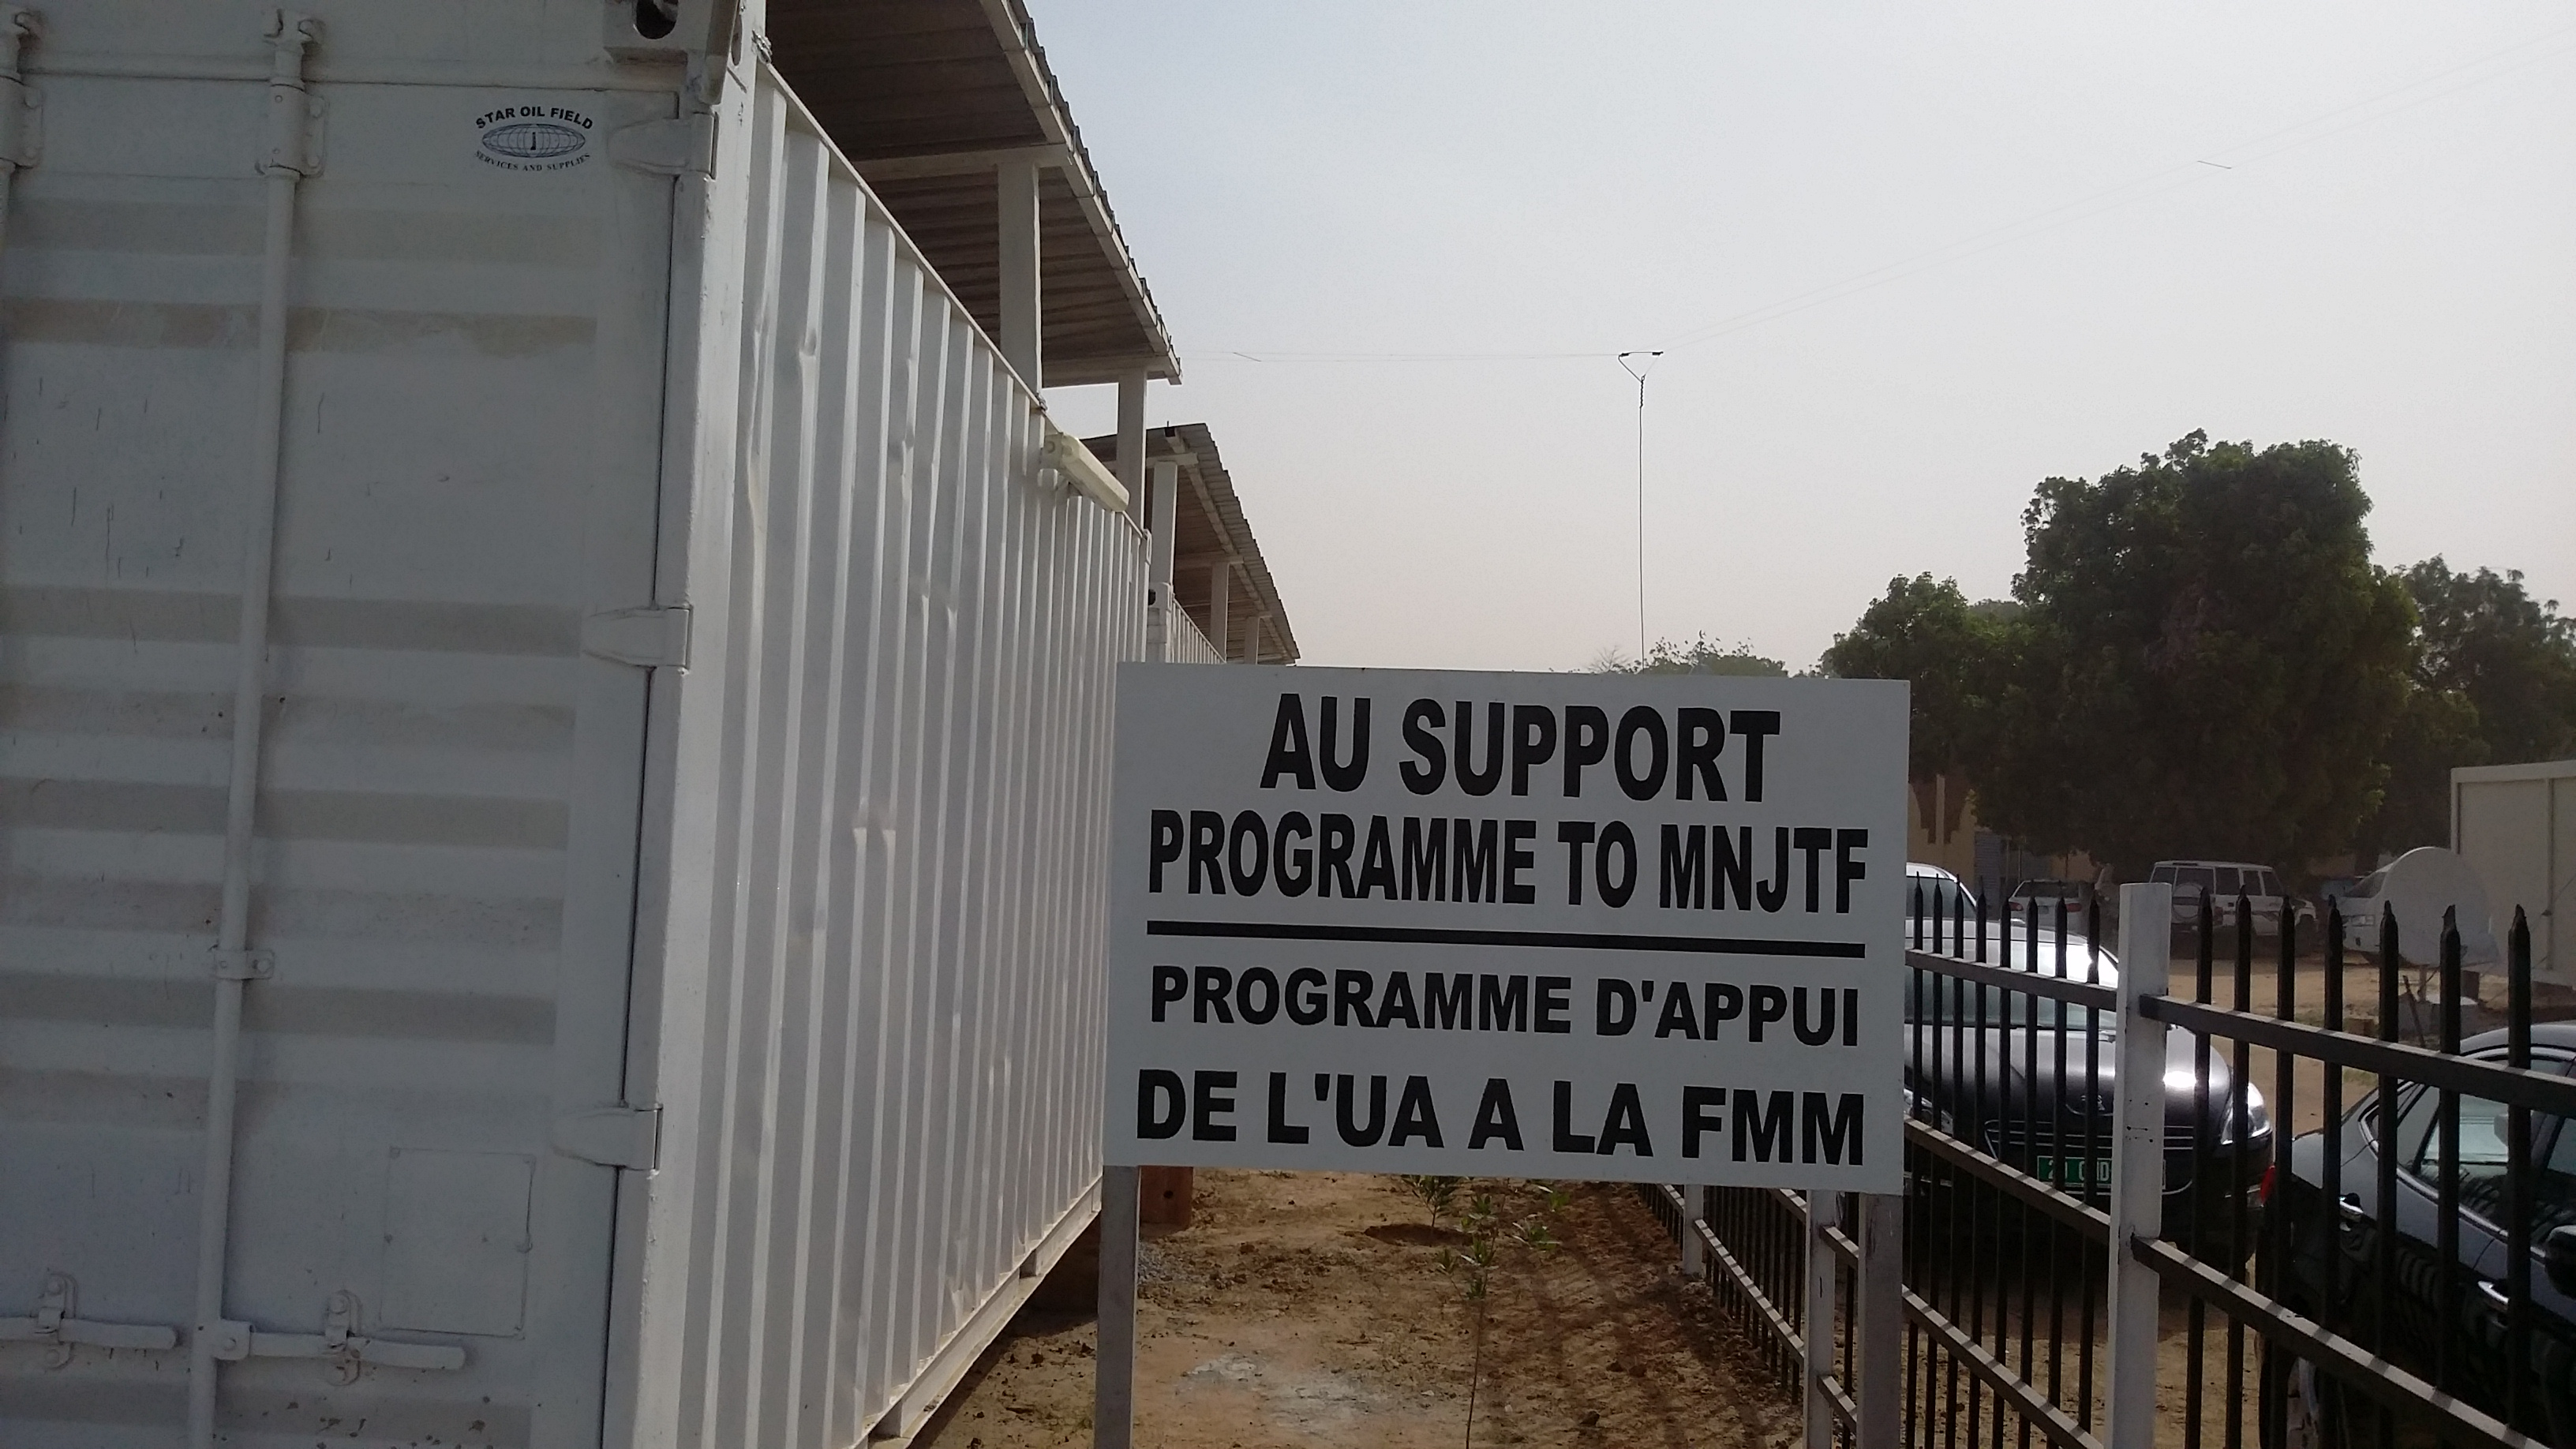 The African Union Commissioner for Peace and Security met the Council of Ministers of the Lake Chad Basin Commission at the Headquarters of Multinational Joint Task Force and handed over AU additional support to the Multinational Joint Task Force in N'djamena, Chad